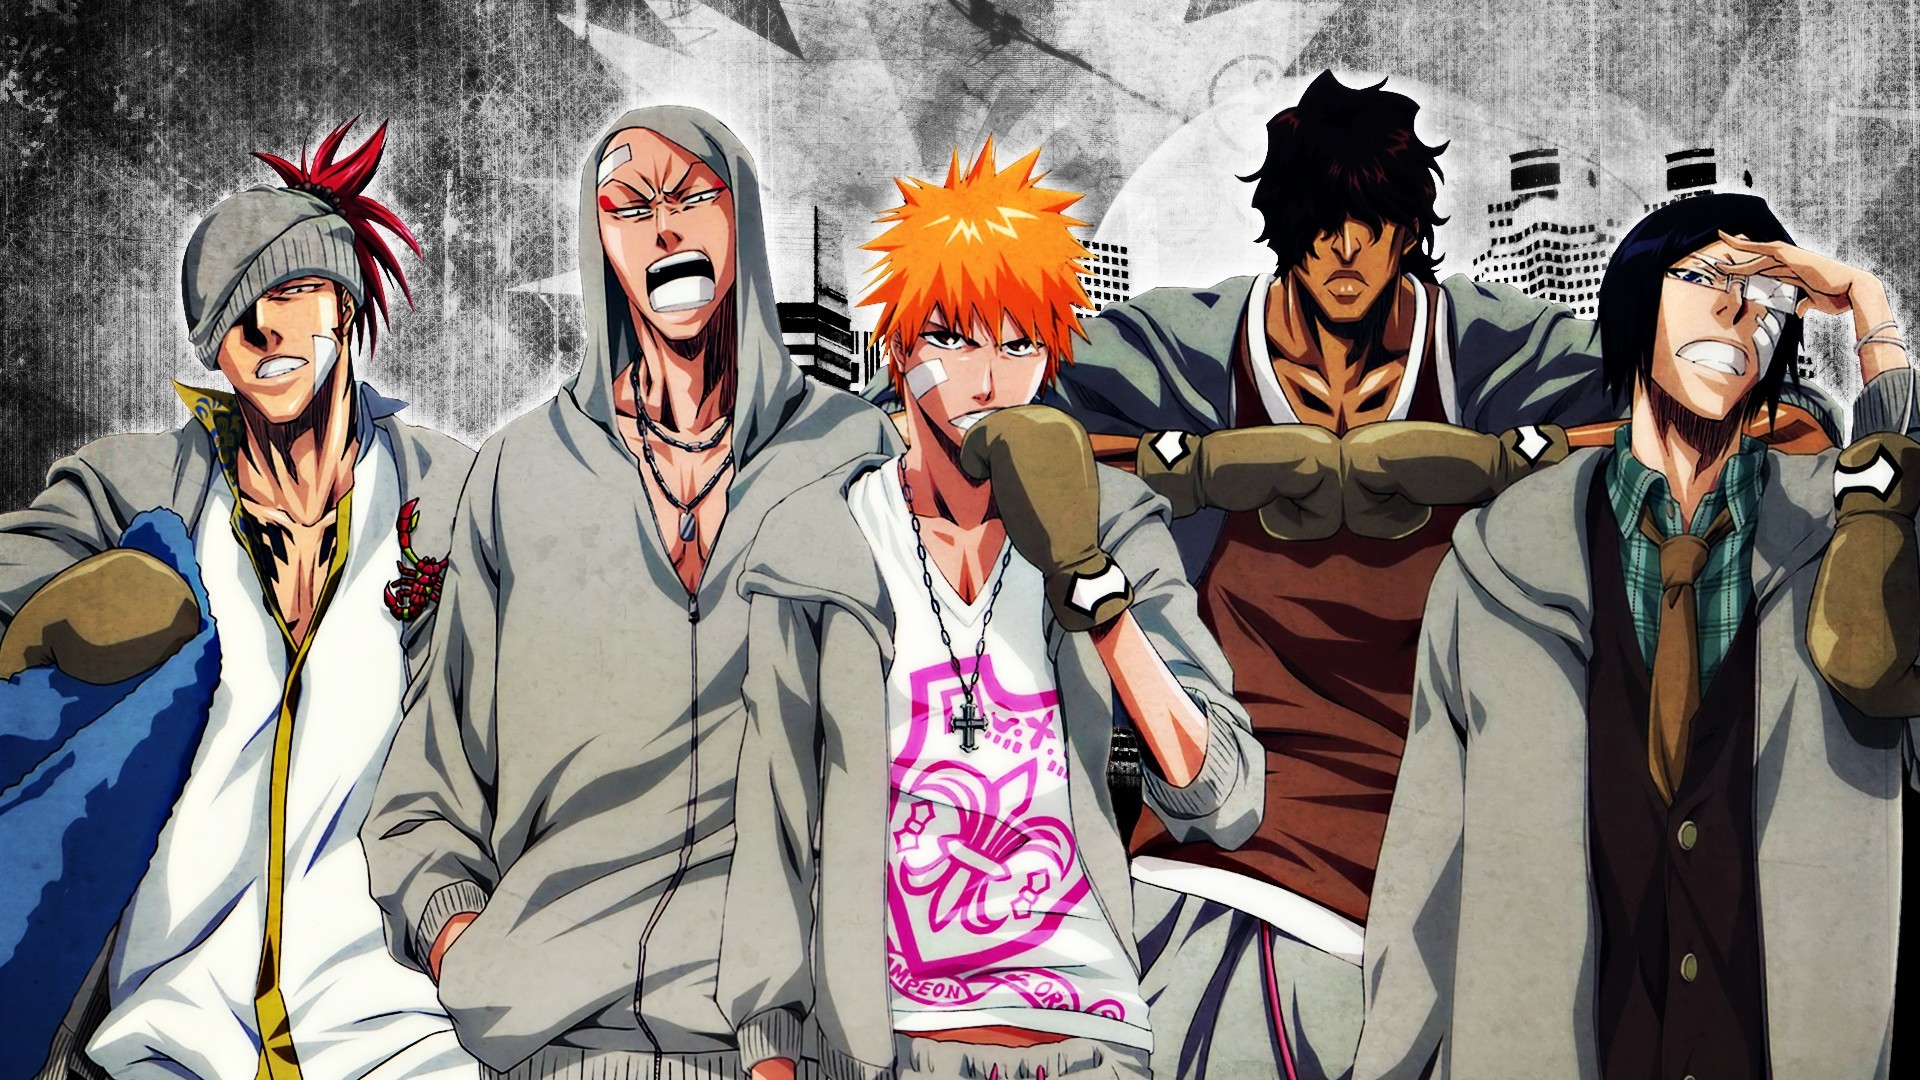 1920x1080 Bleach Computer Wallpapers, Desktop Backgrounds ID 1920×1080 Bleach  1920×1080 Wallpapers (